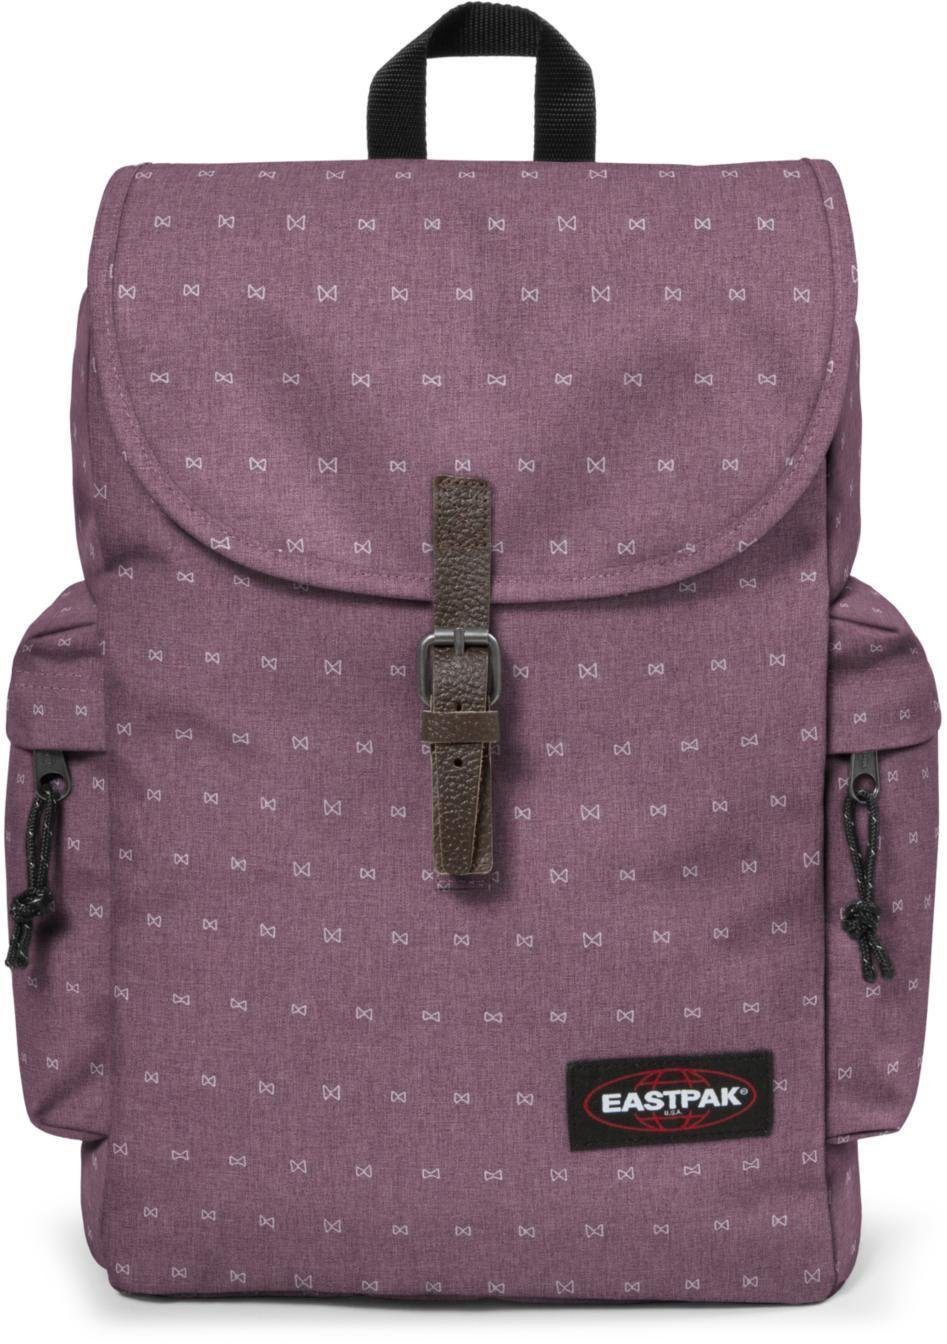 Eastpak Rucksack mit Laptopfach, »AUSTIN little bow«